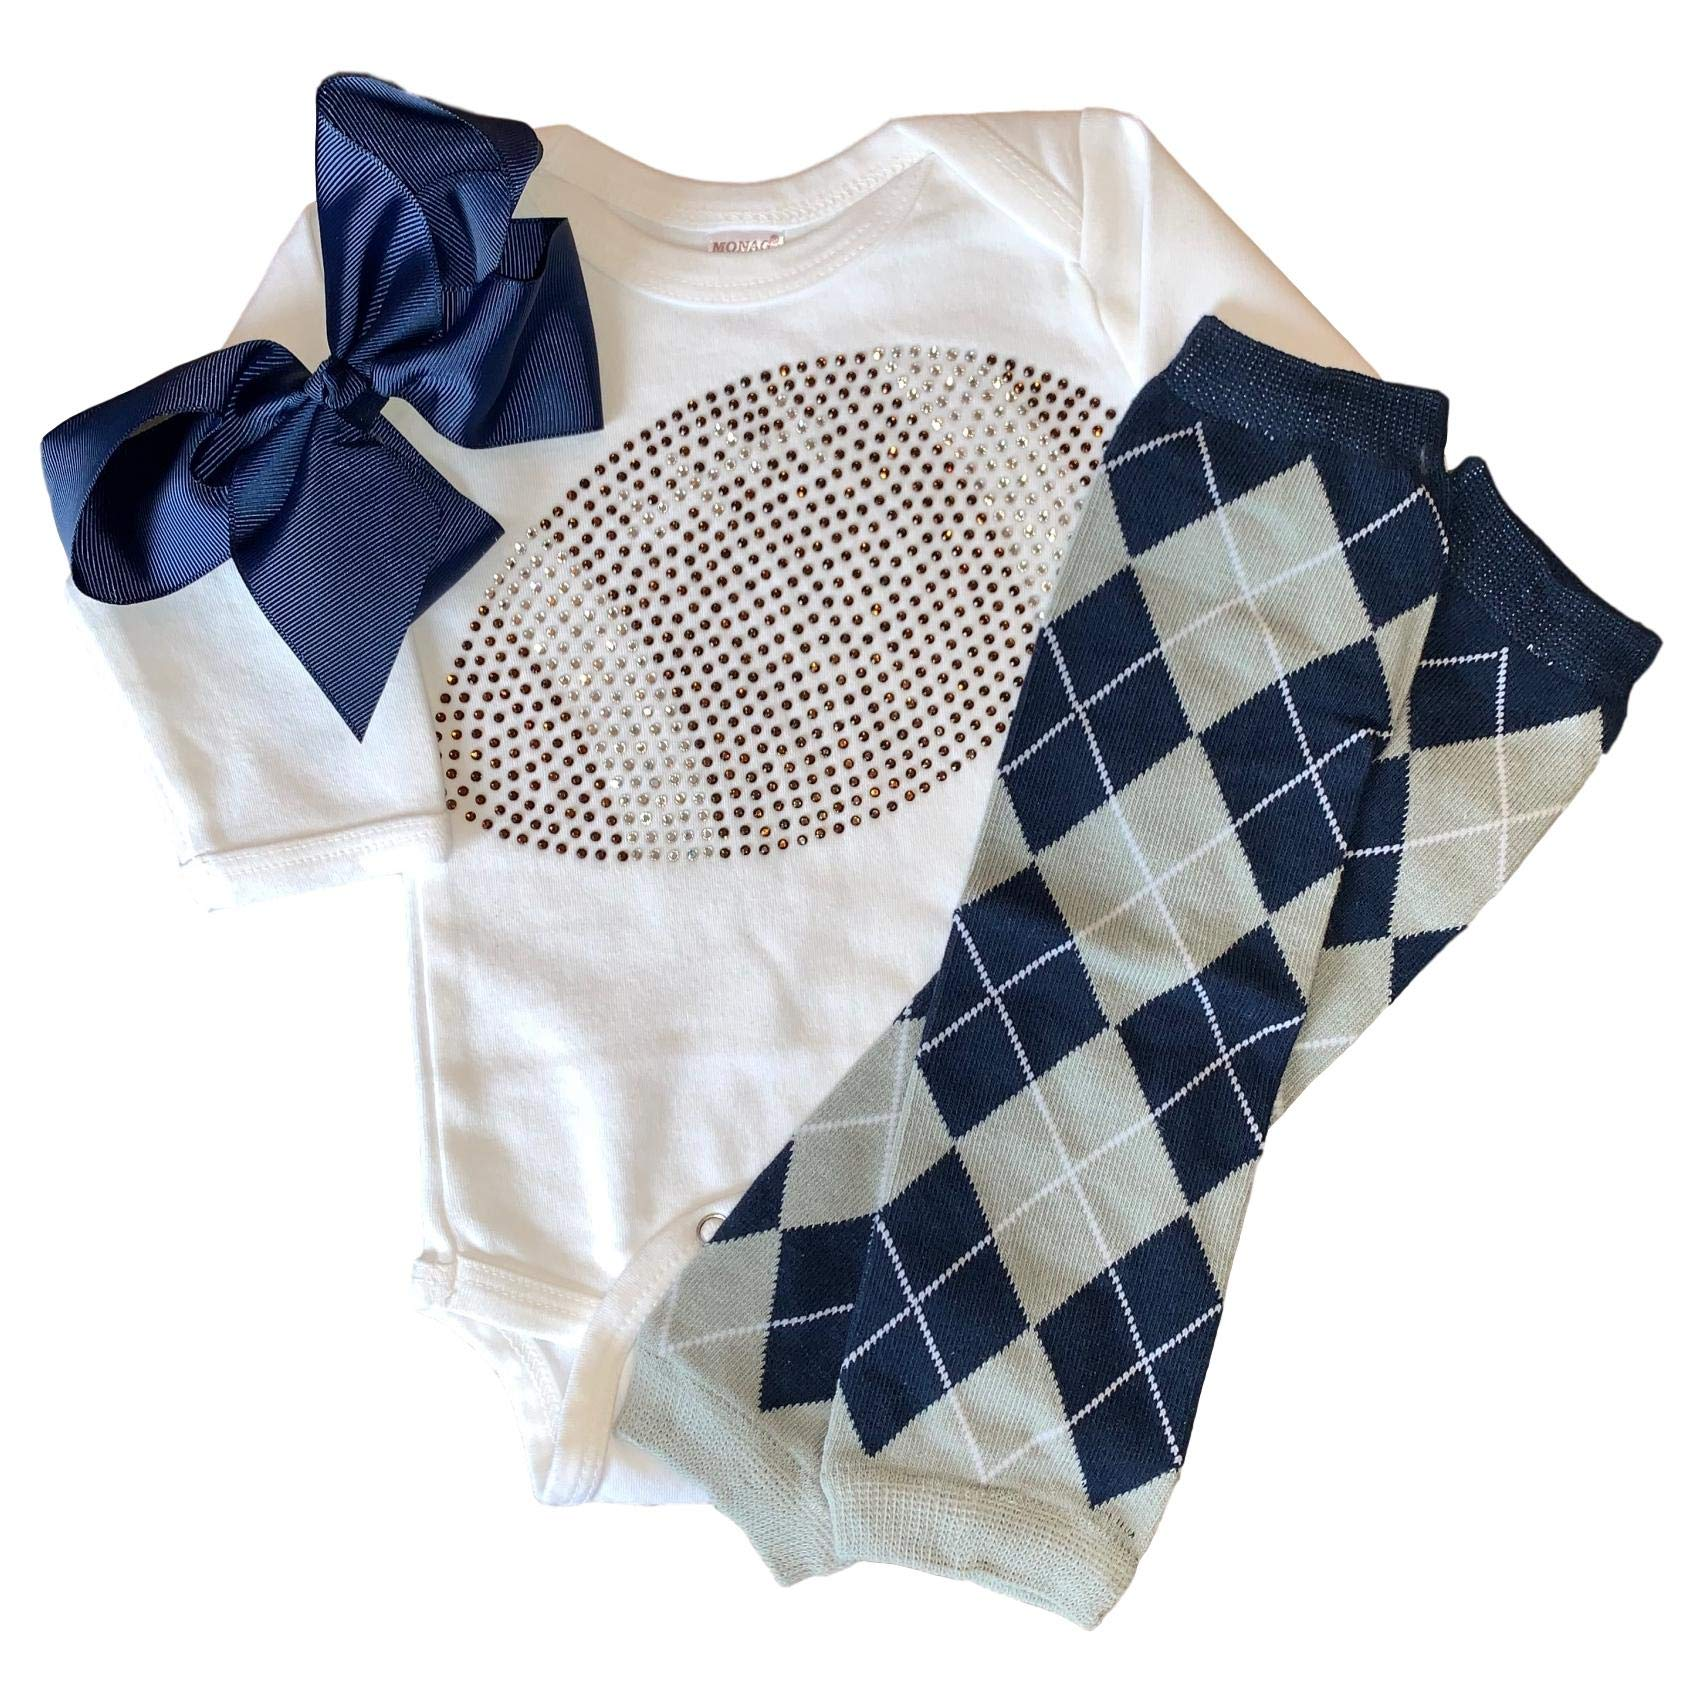 Infant/Baby Girl's Rhinestone Football Outfit w/Navy and Grey Argyle Leg Warmers 6-12mo by FanGarb